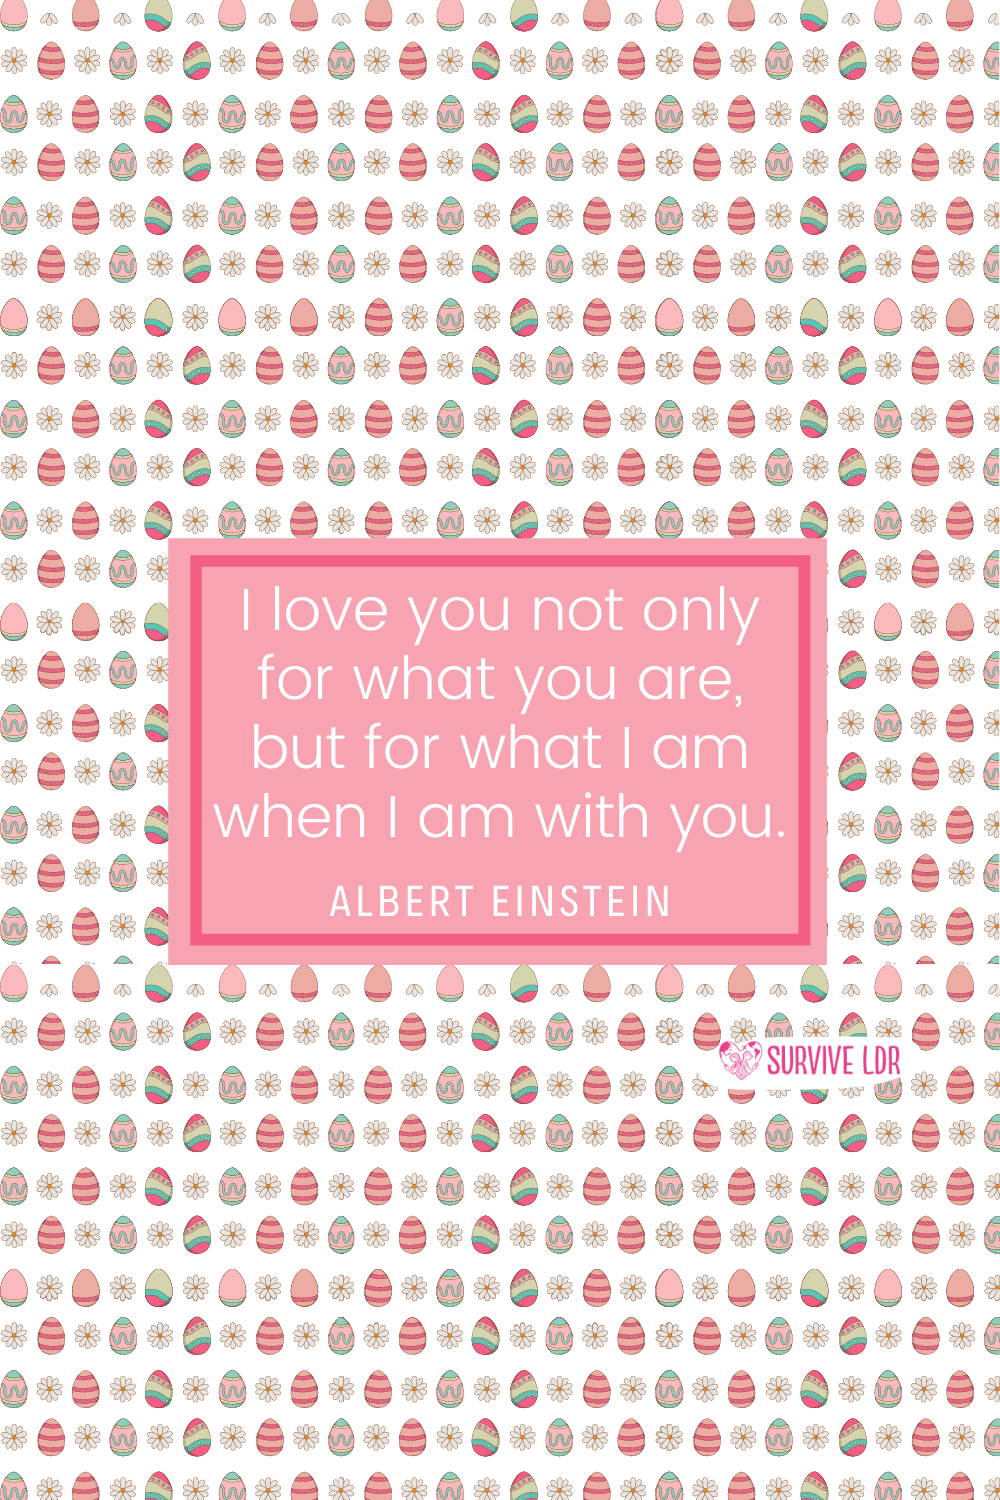 I love you not only for what you are, but for what I am when I am with you. Albert Einstein Visit our website for more gifts, tips and quotes. surviveldr.com #longdistancelovers #ldrlove #ldrrelationship #longdistancequotes #surviveldr #couples #ldrlovers #survivingthedistance #longdistancerelationship #LDRlove #LDRqualitytime #LDRinspirationaltips #LDRtips